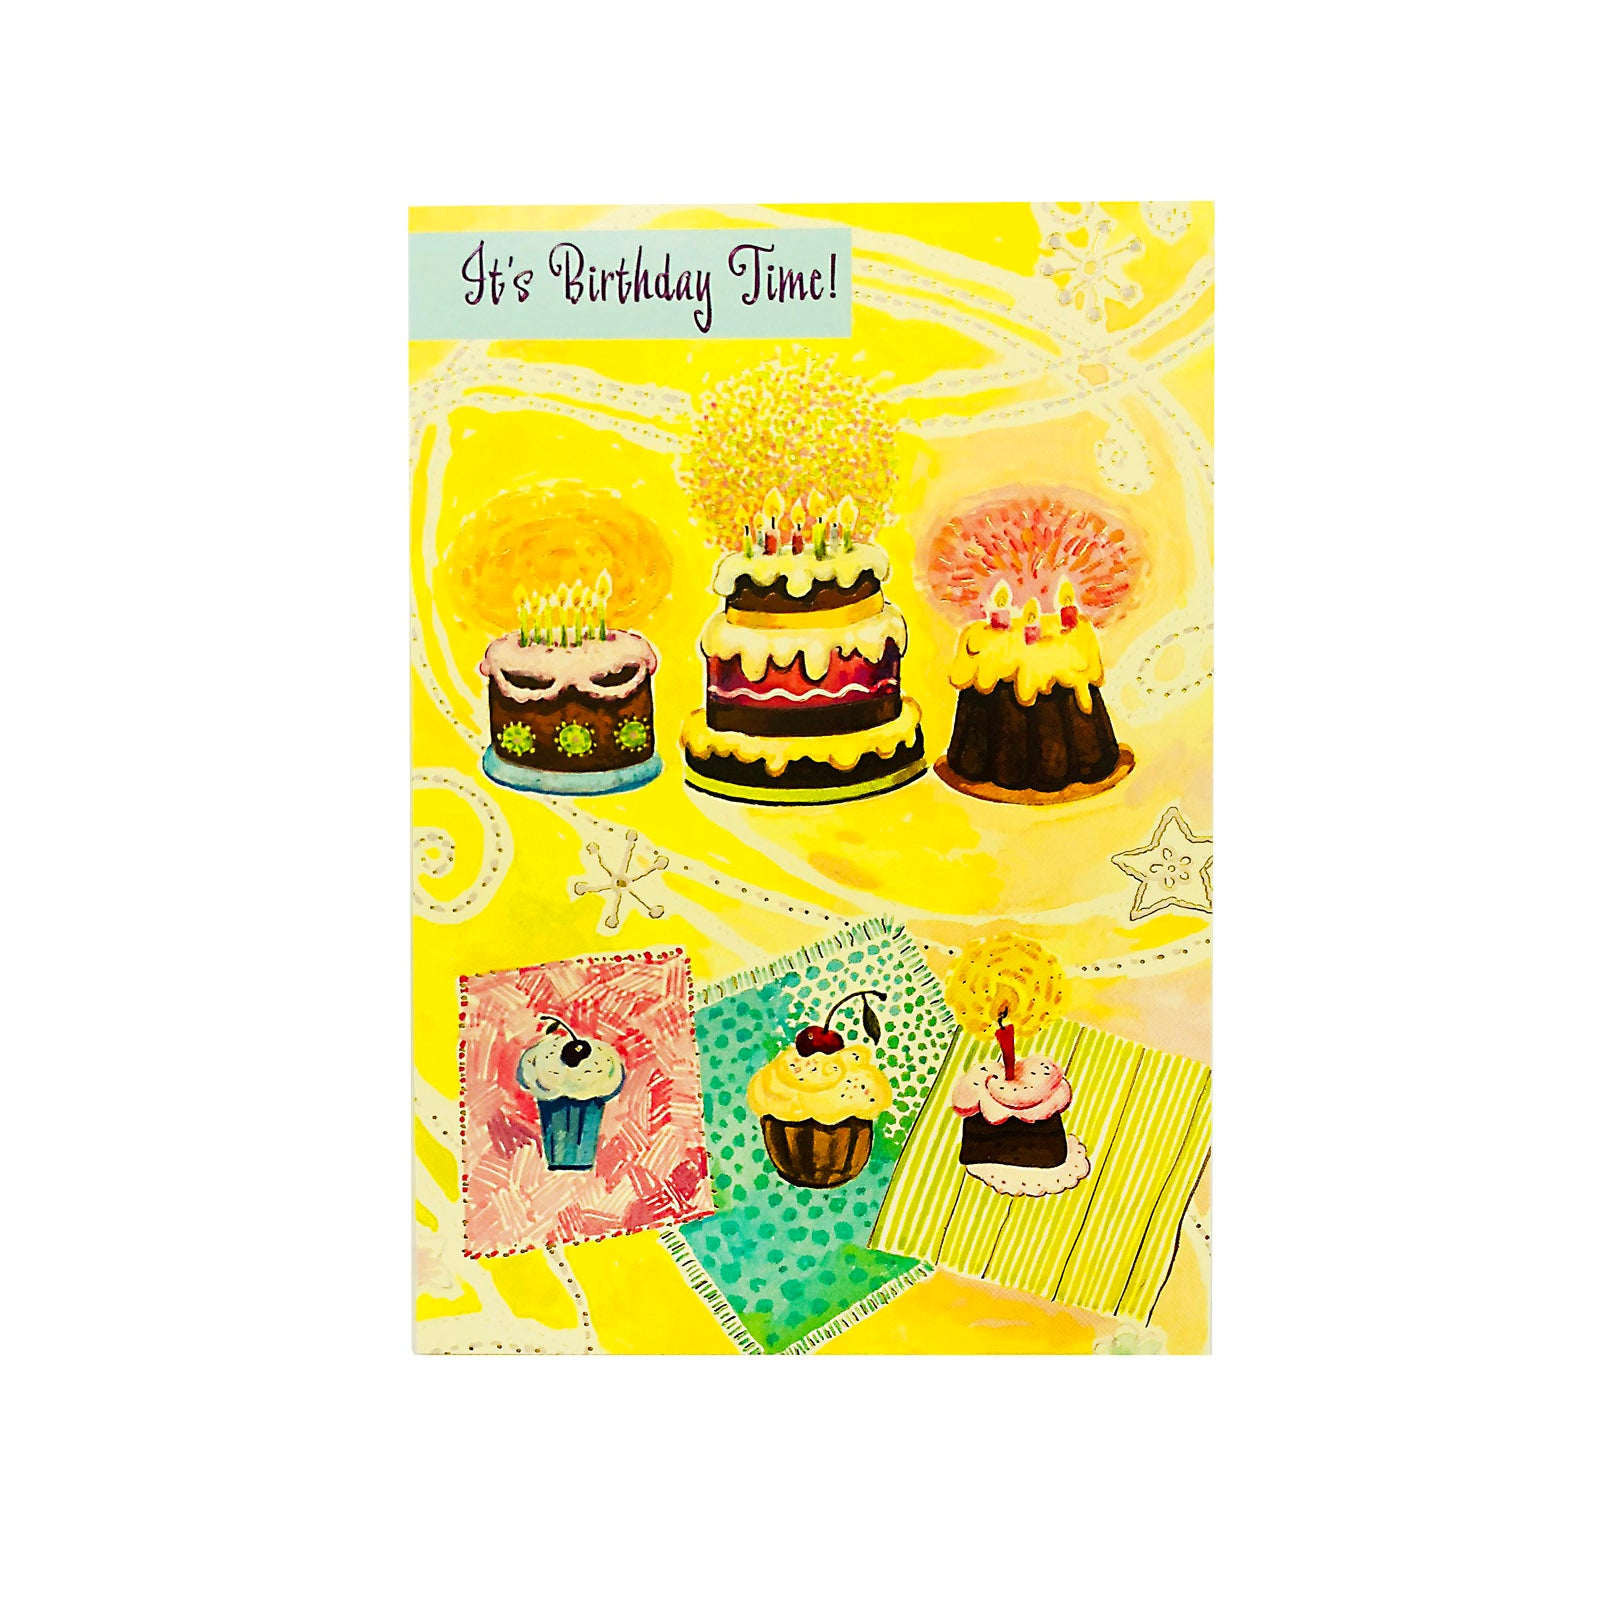 Designer Greetings Birthday Card - It's Birthday Time - Cakes